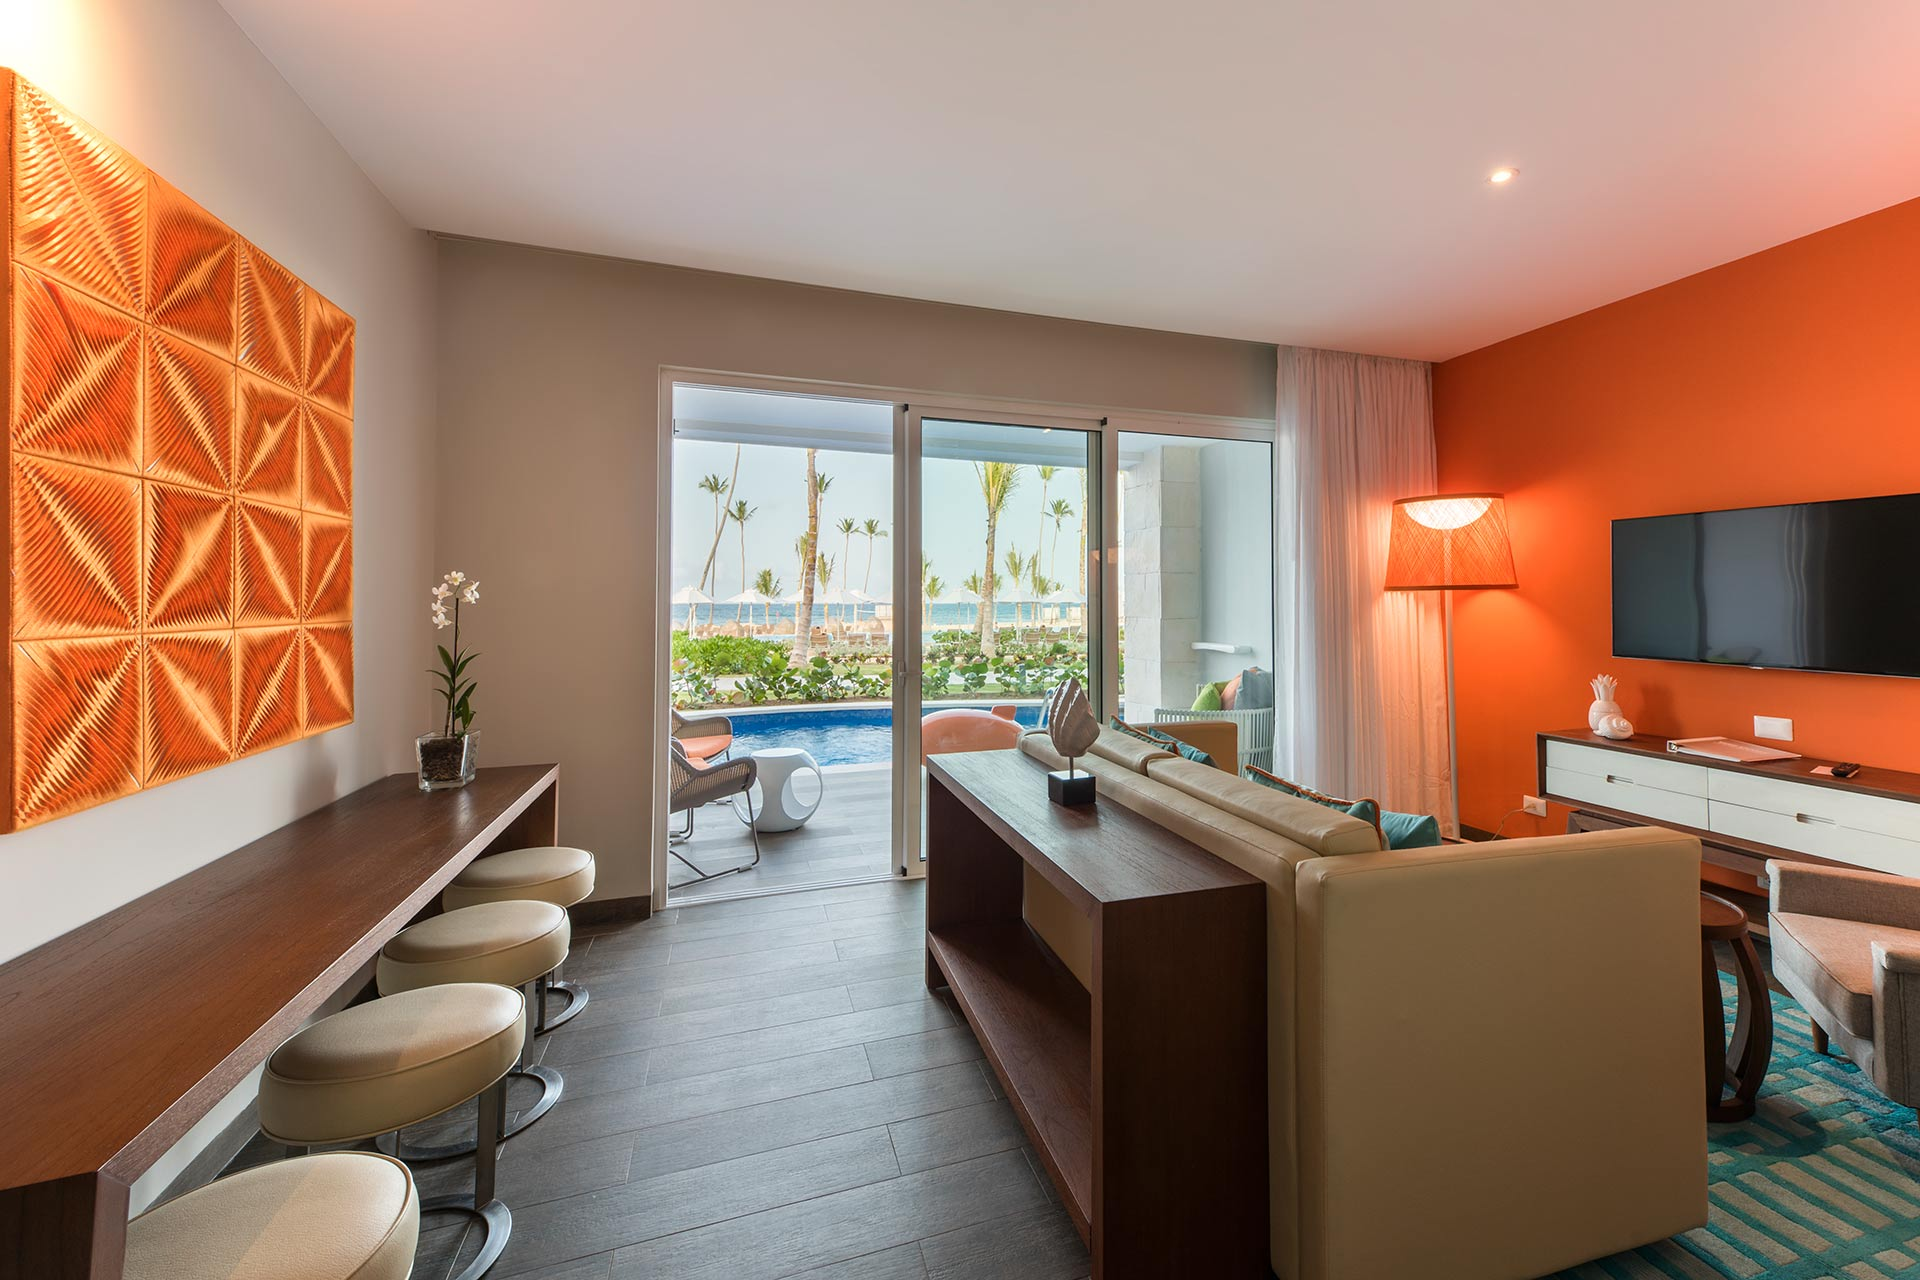 Swim-Up Suite at Nickelodeon Hotels and Resorts Punta Cana; Courtesy of Nickelodeon Hotels and Resorts Punta Cana